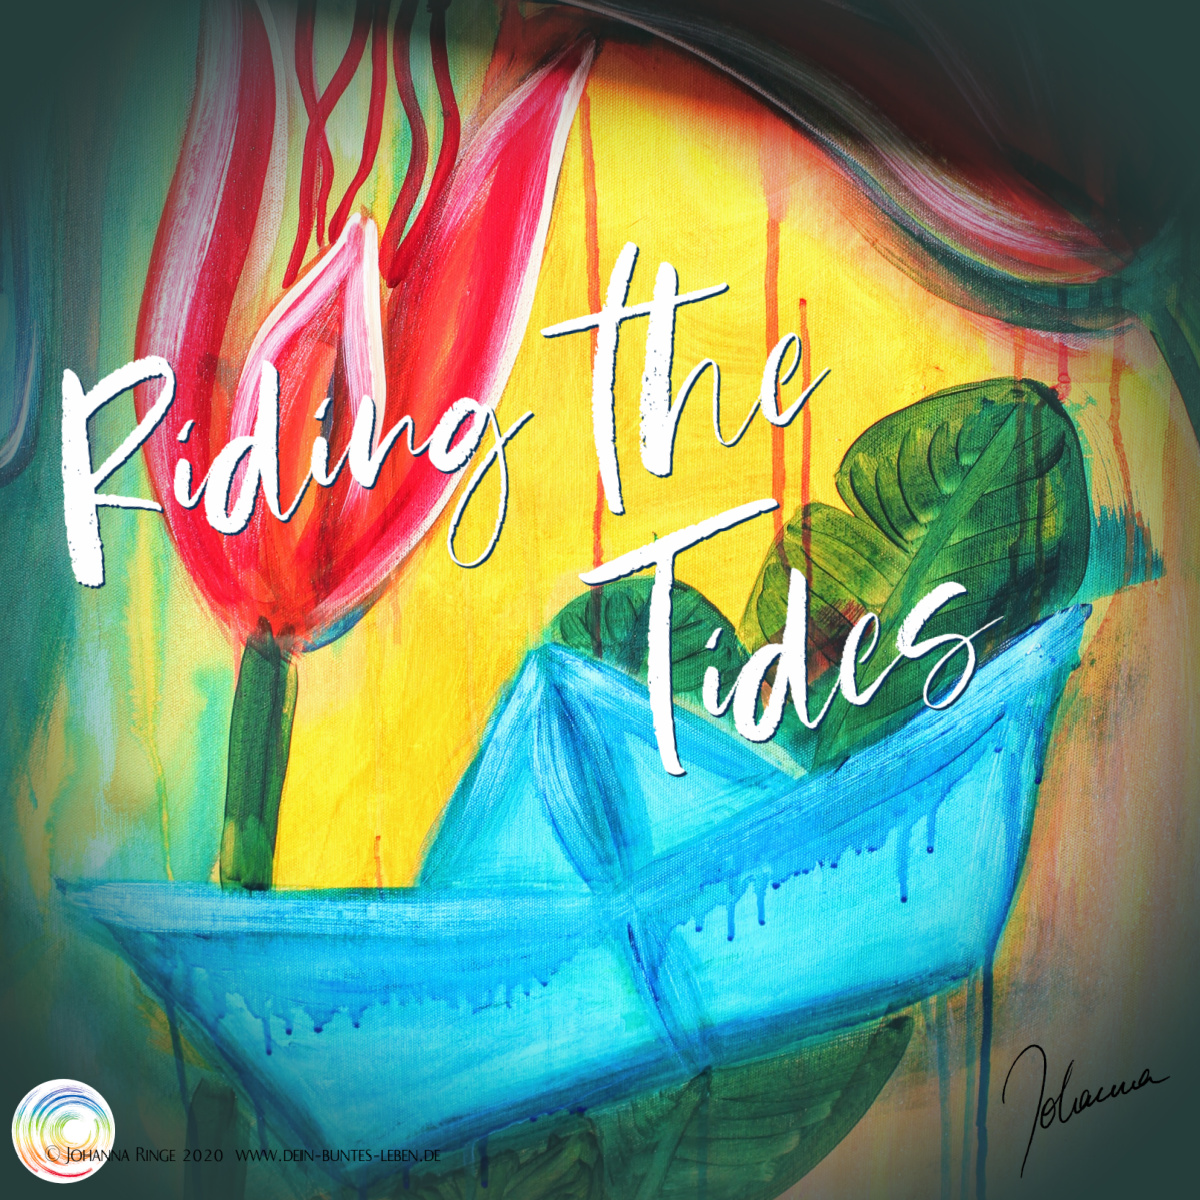 Riding the Tides: text on painting of a jumping paperboat and lush flowers. ©2020 Johanna Ringe www.johannaringe.com